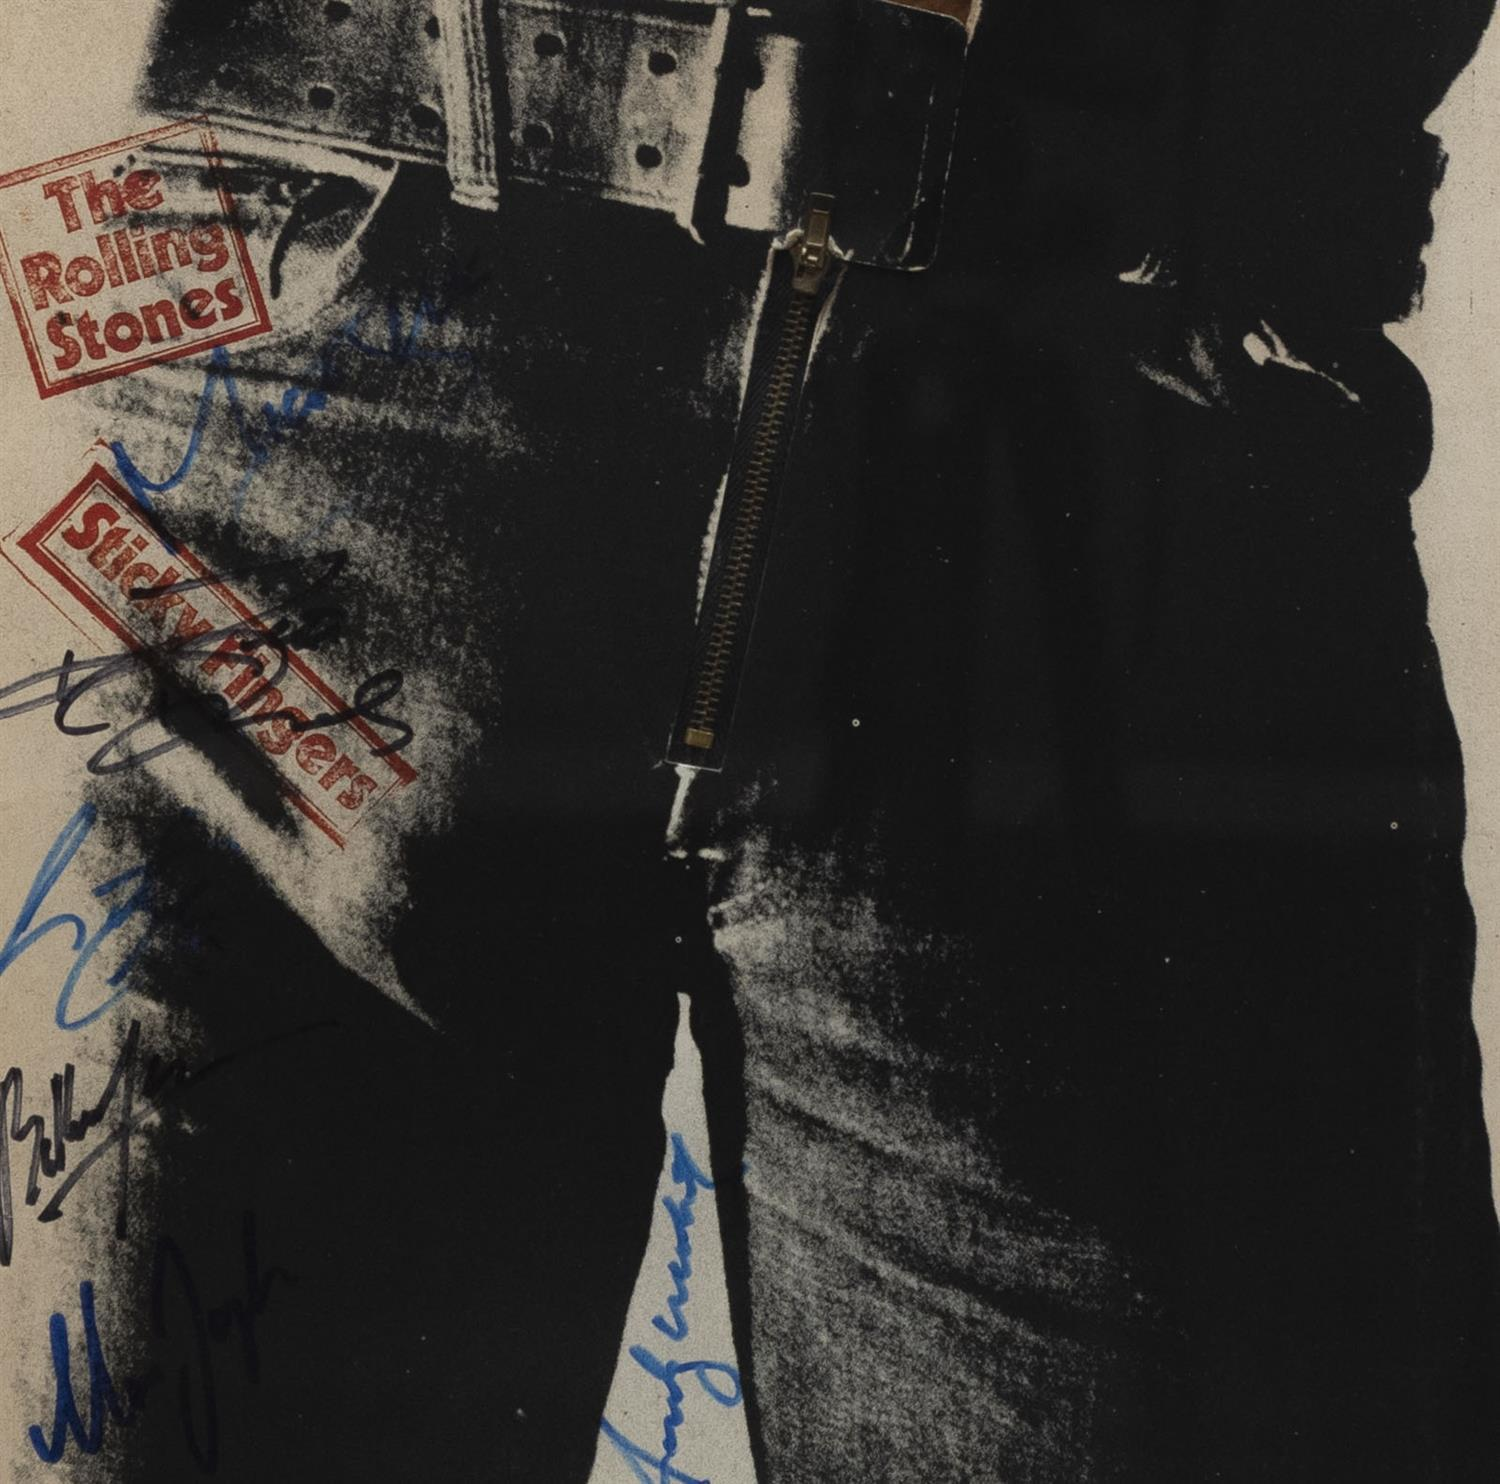 Andy Warhol (and five) Signed Sticky Fingers Album